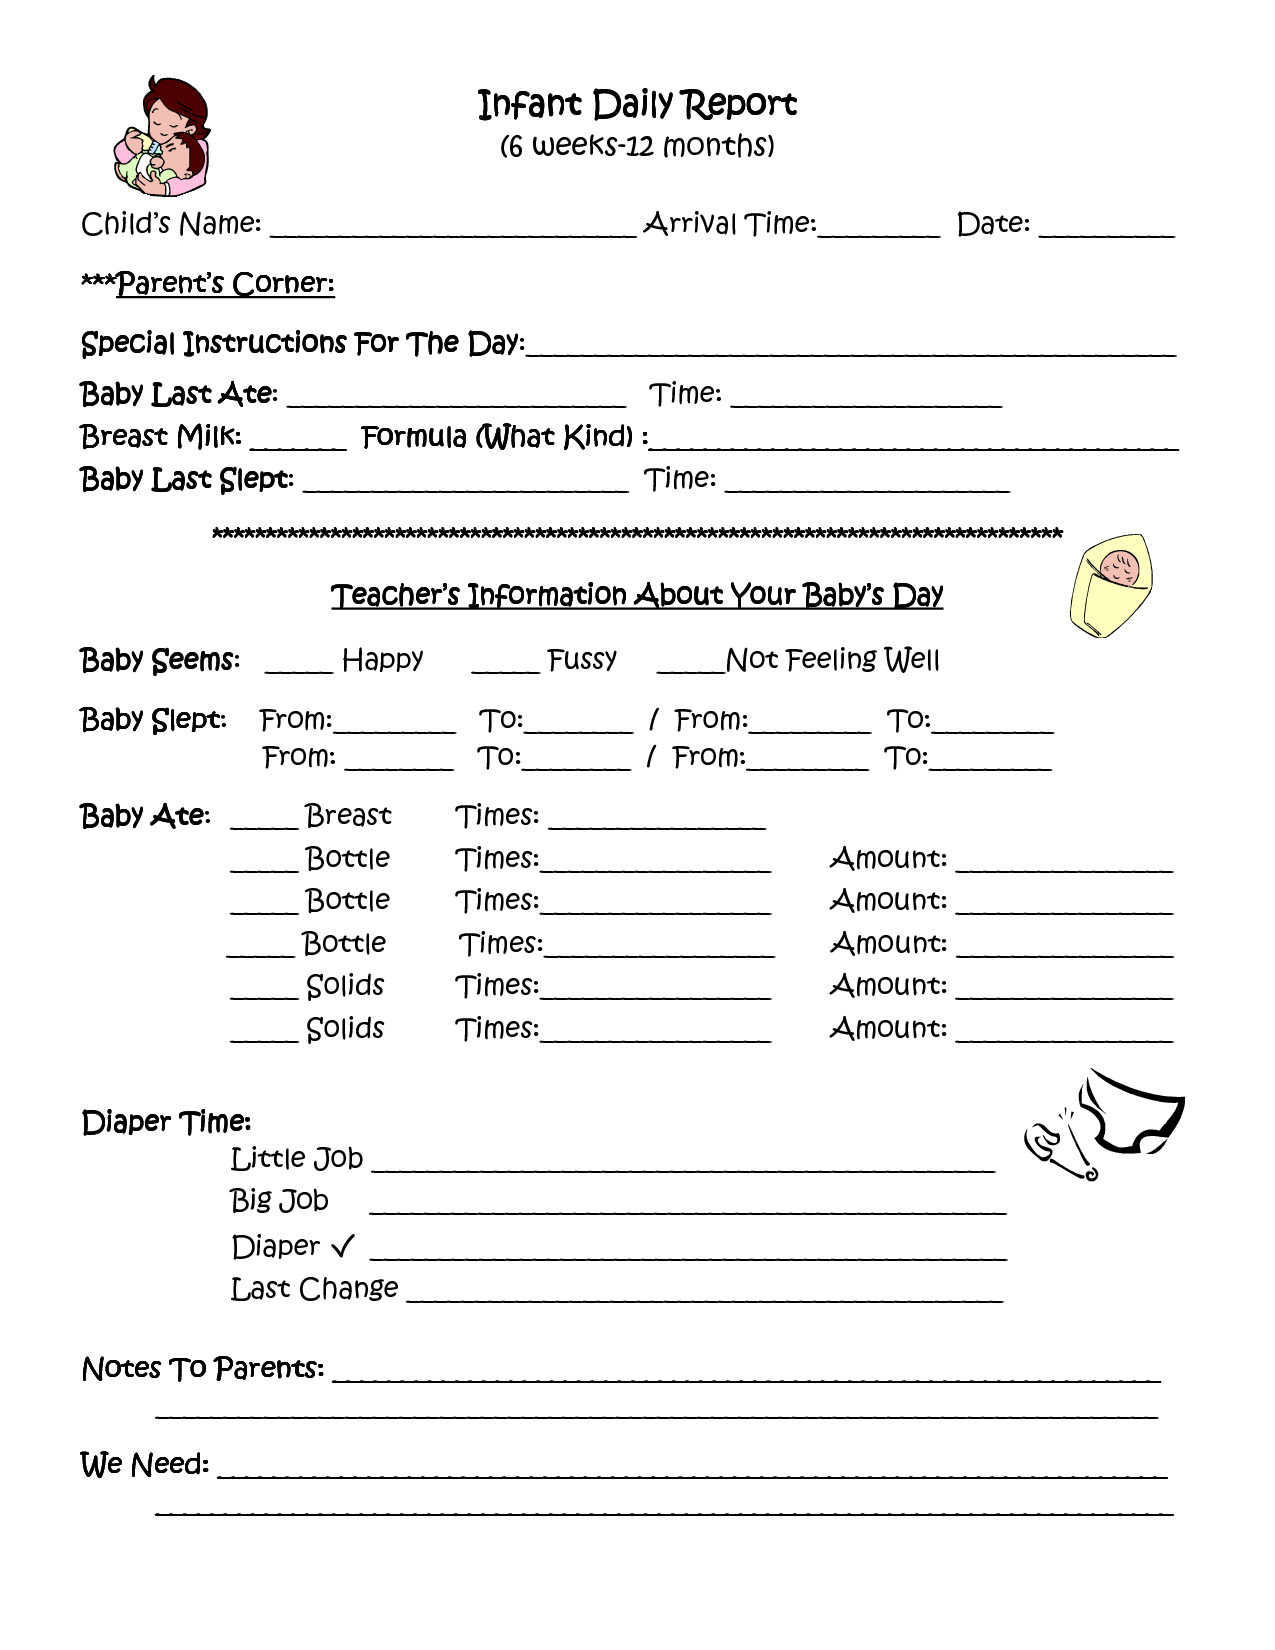 infant daily report inhome day care forms Pinterest